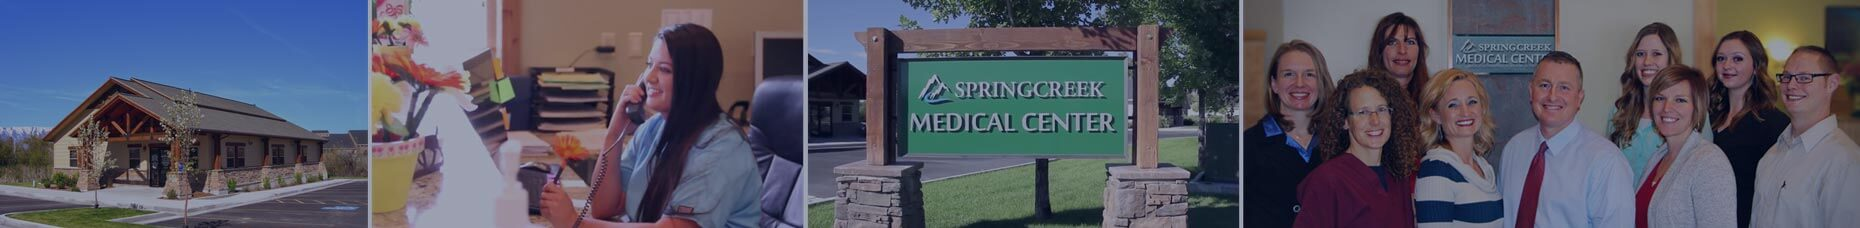 Spring Creek Medical Center in Logan, Utah